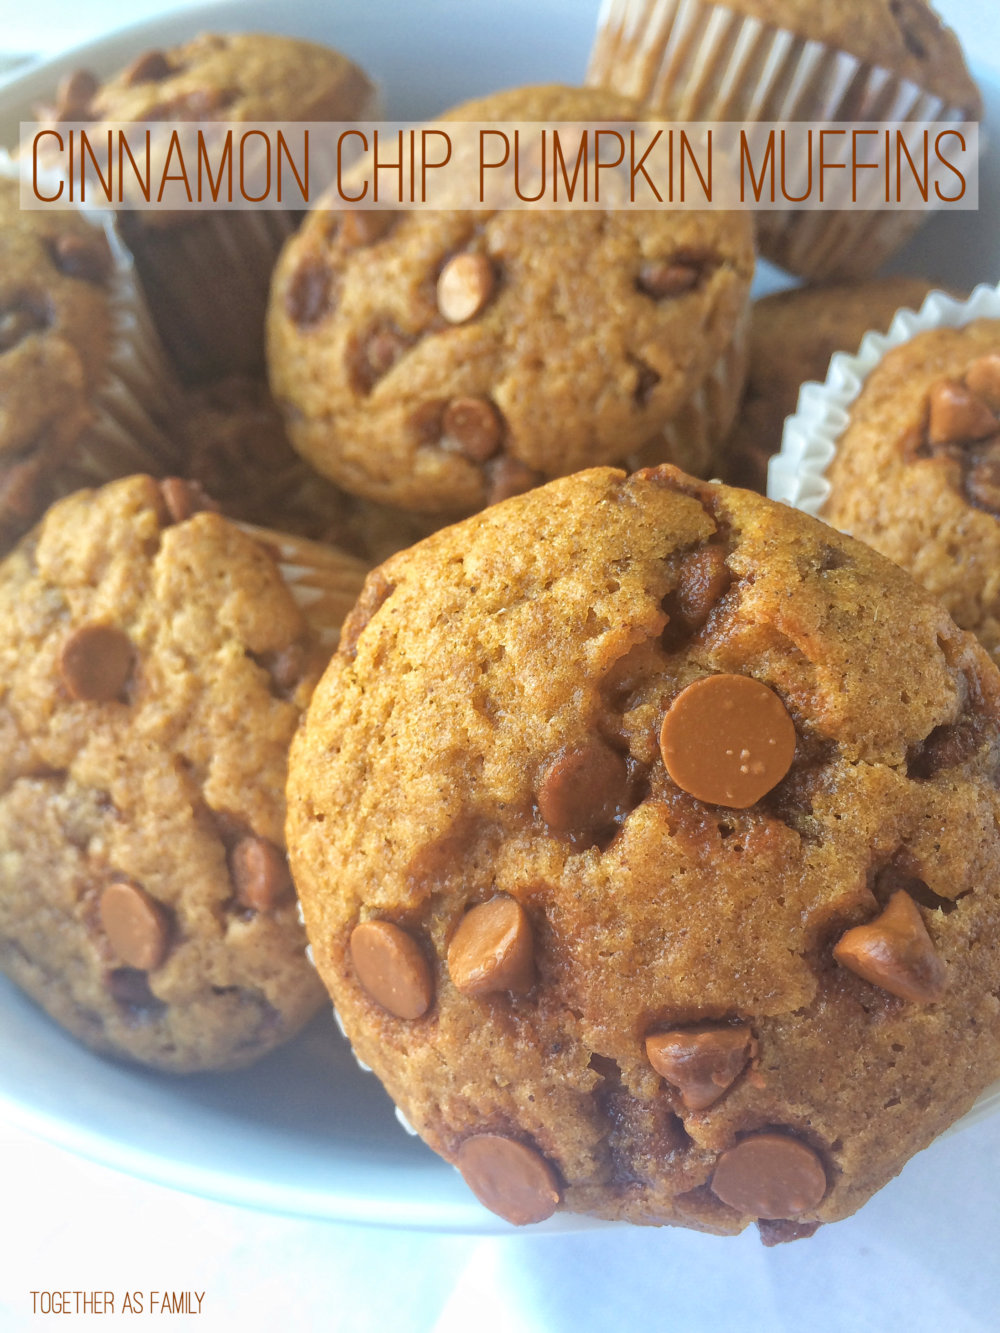 Cinnamon Chip Pumpkin Muffins